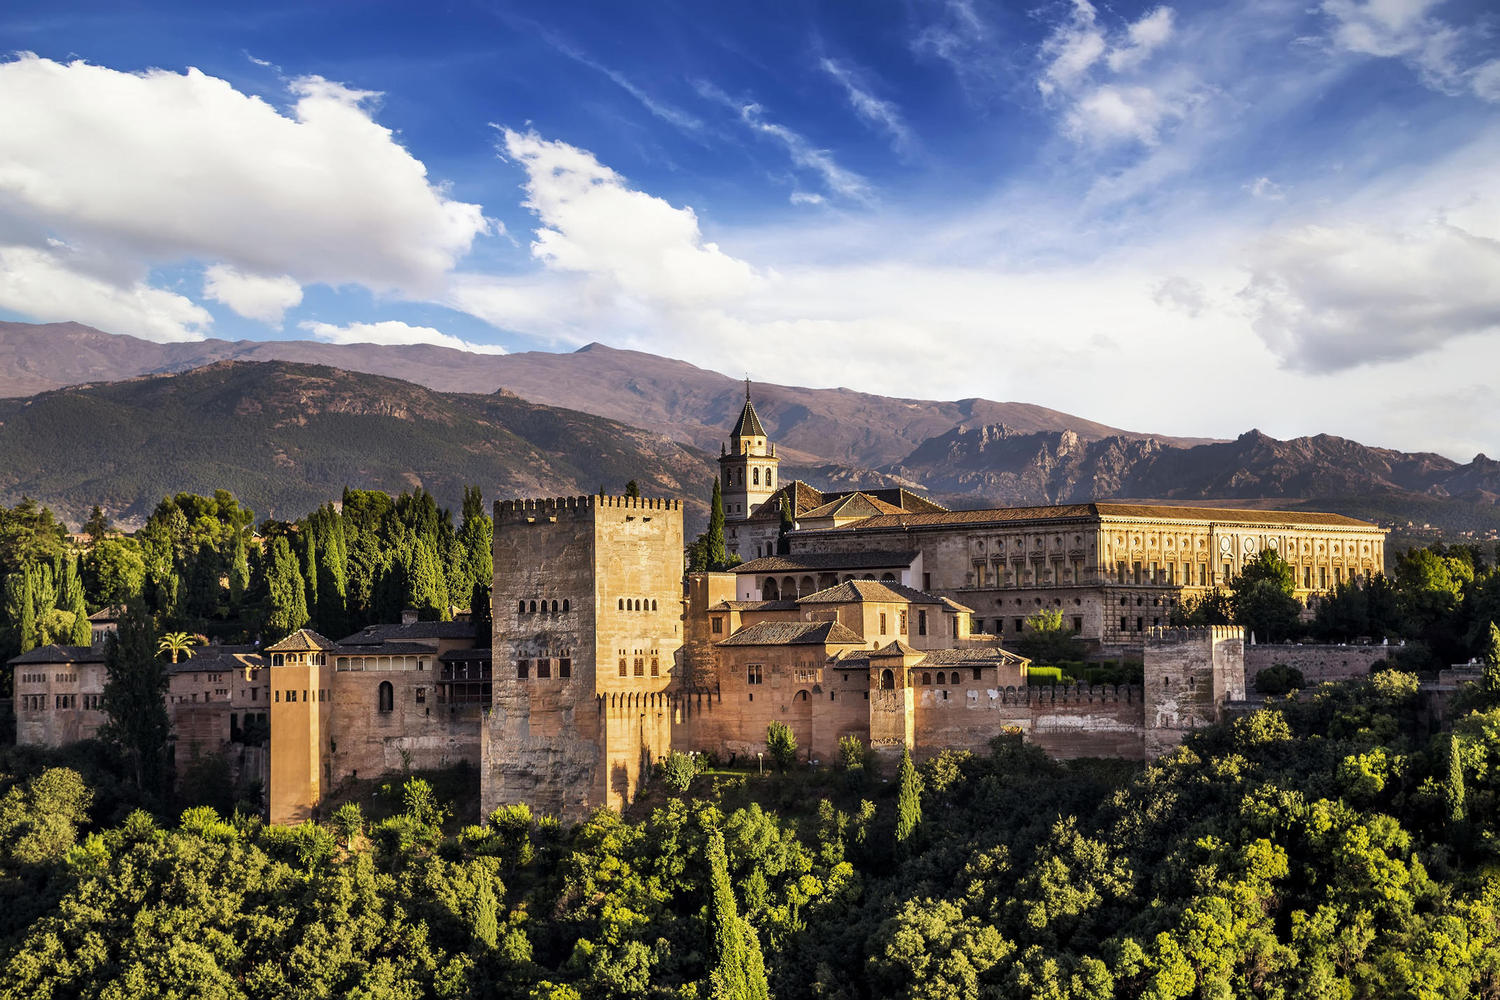 Panoramic view of the Alhambra from the top of the old Arab neighbourhood of Albaicin.